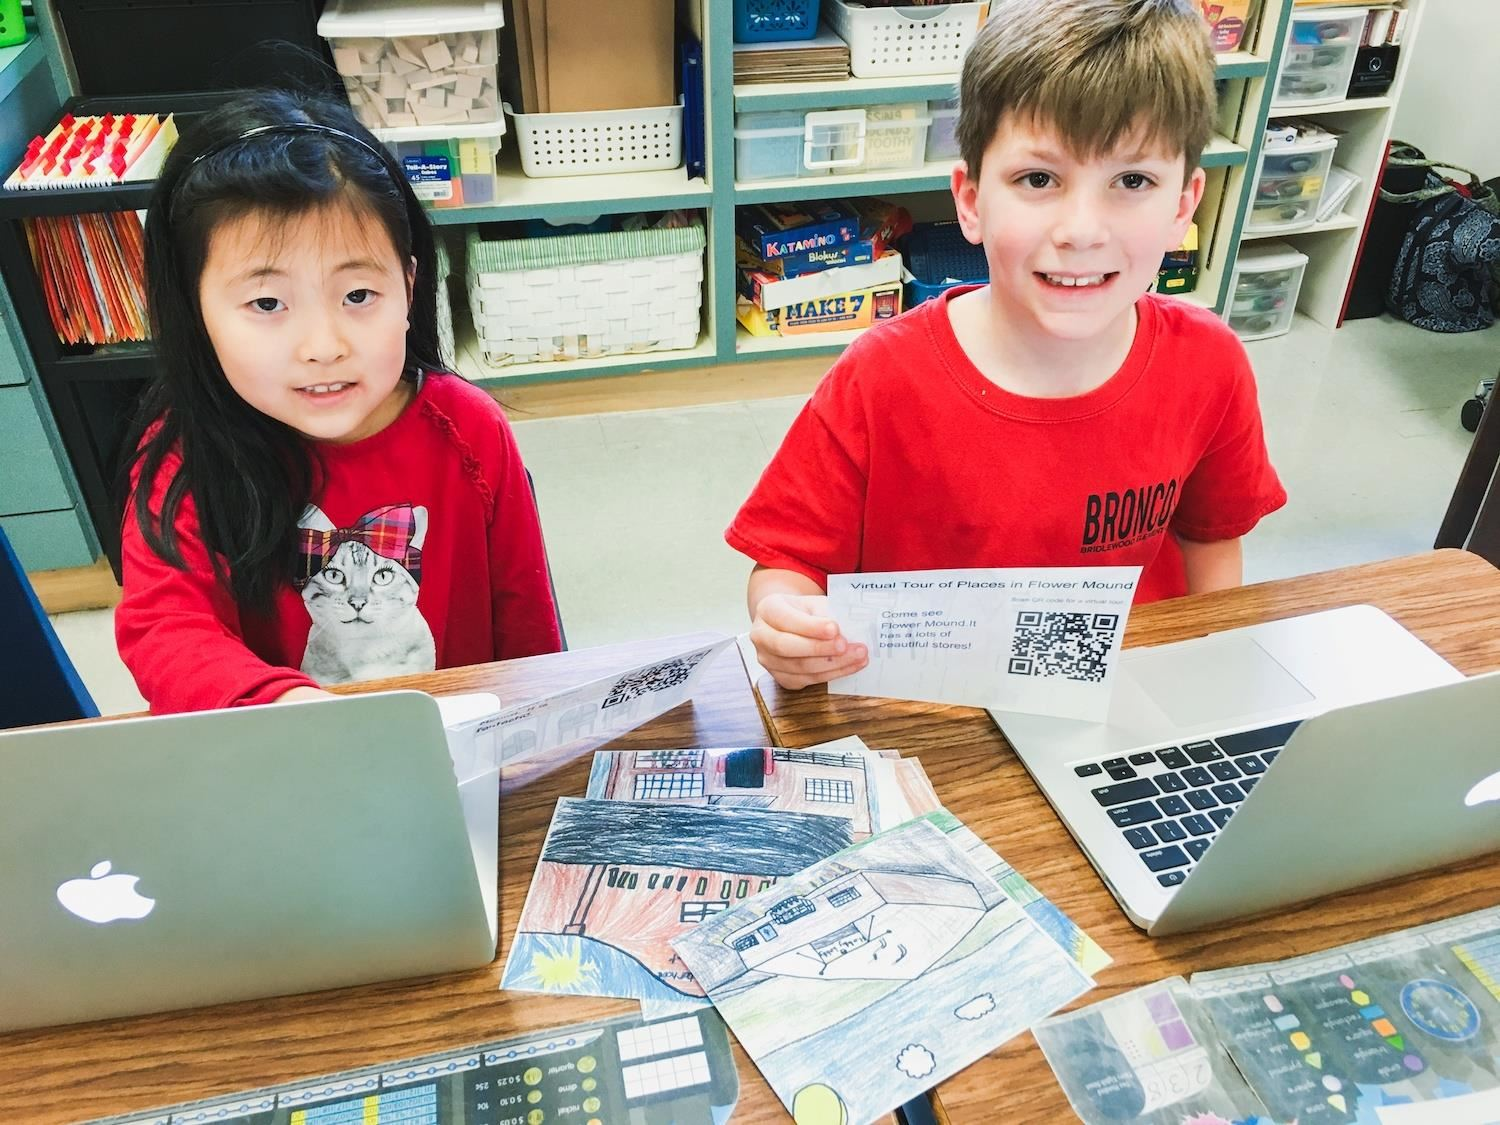 Bridlewood students work on laptops